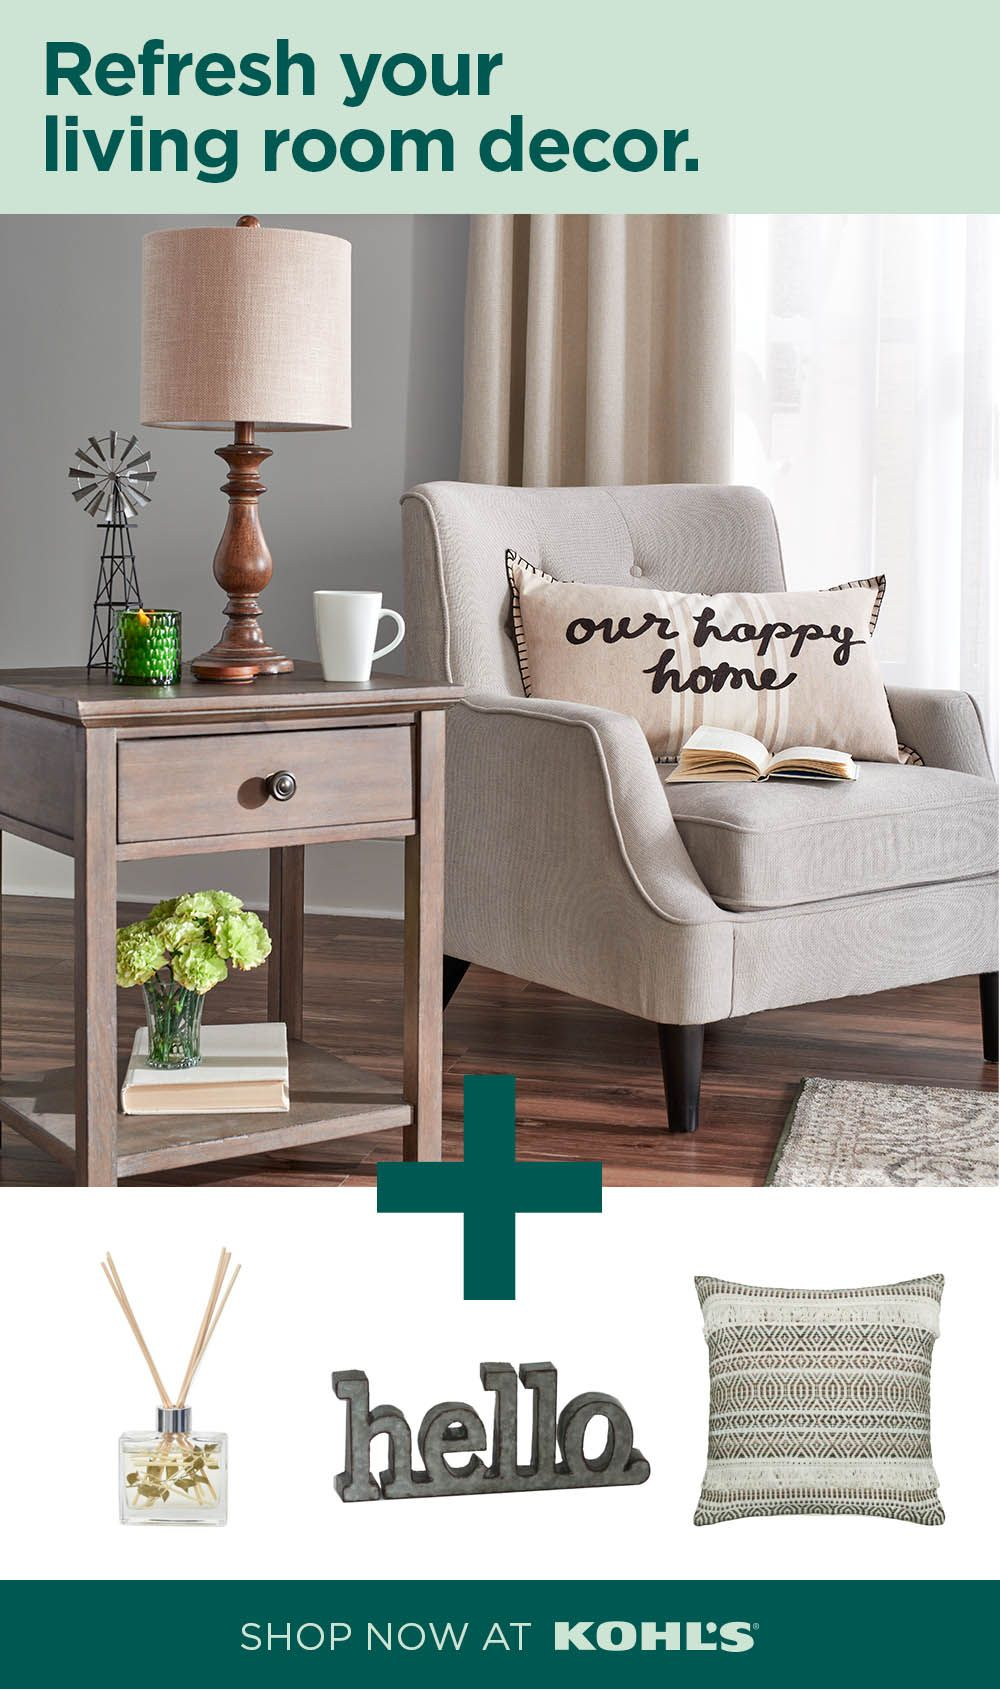 Time For A Refresh Swap Out Your Decor With Fun Fresh Style Find